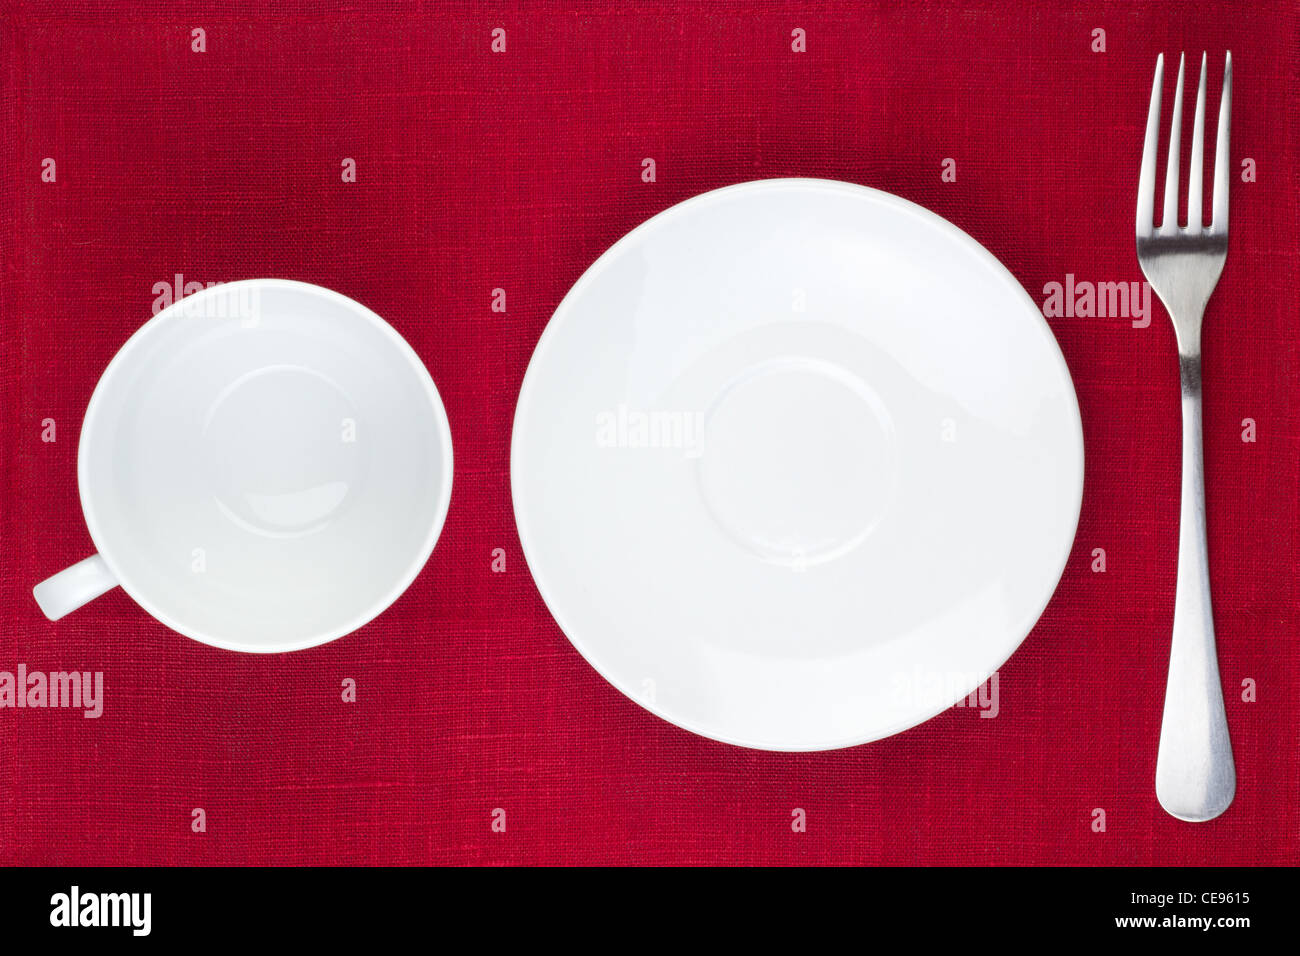 White kitchen utensils (cup, plate, fork) on red background Stock Photo